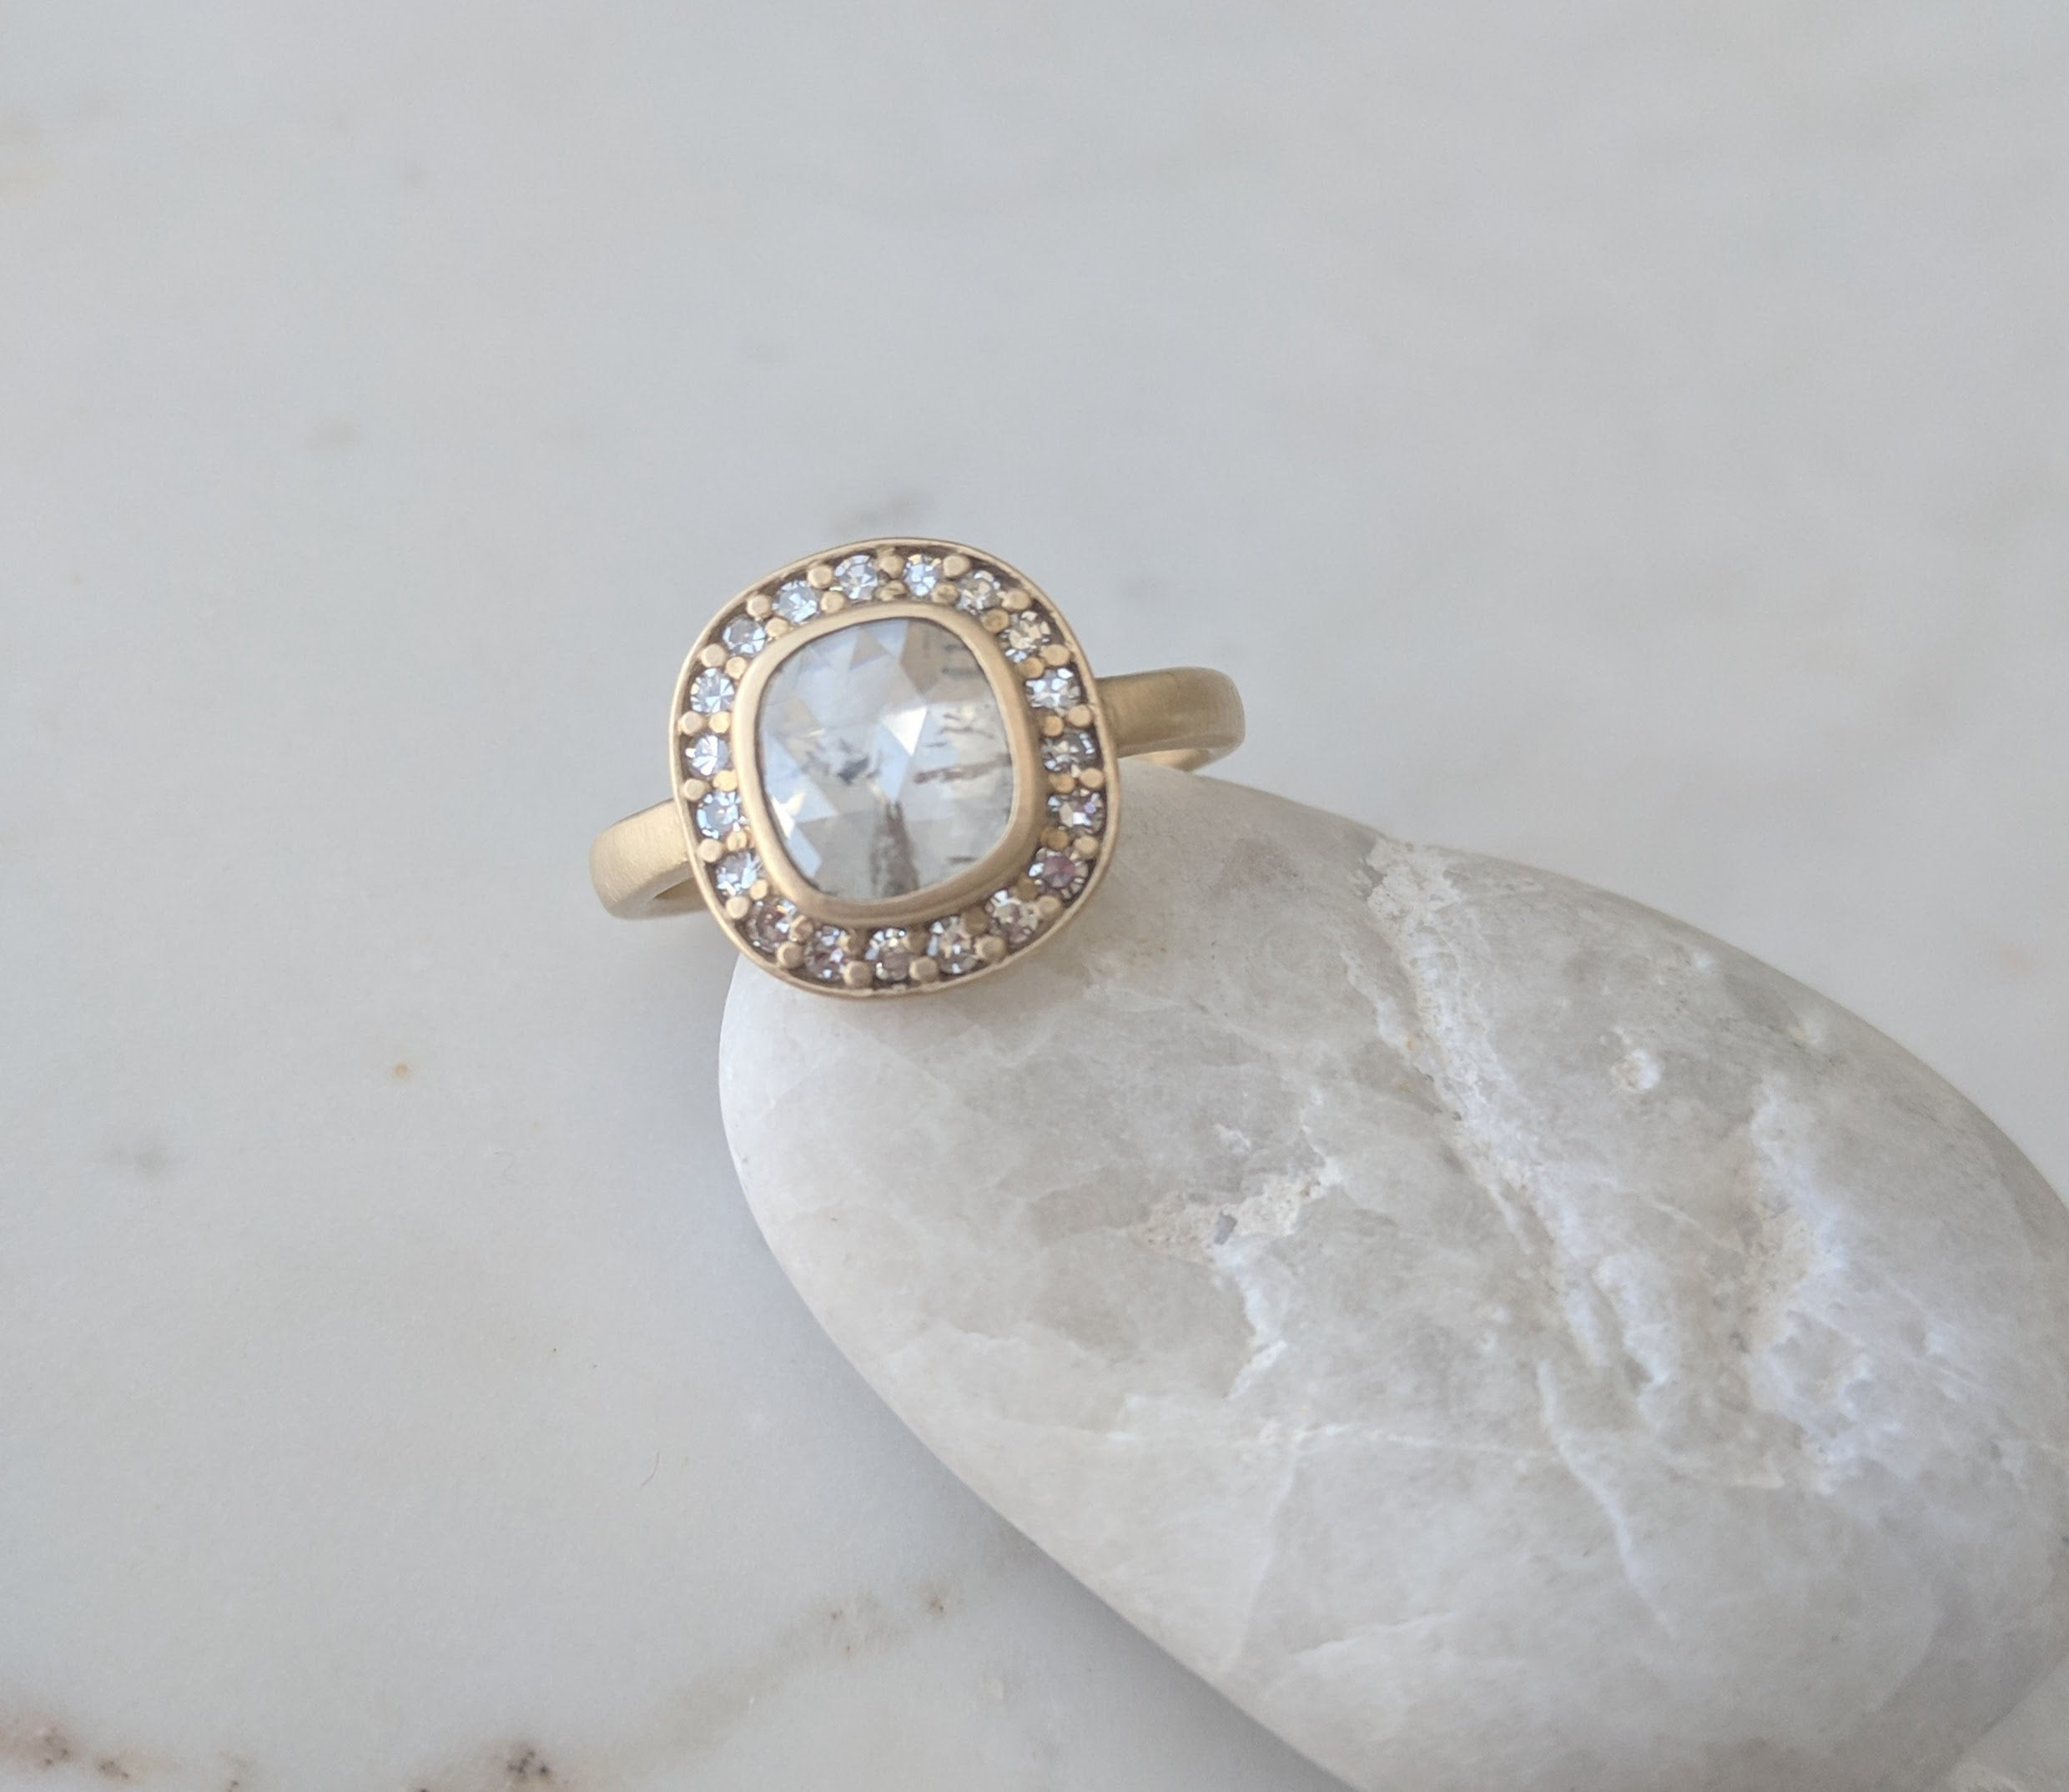 Translucent Cushion Diamond Halo Ring in 14K Yellow Gold